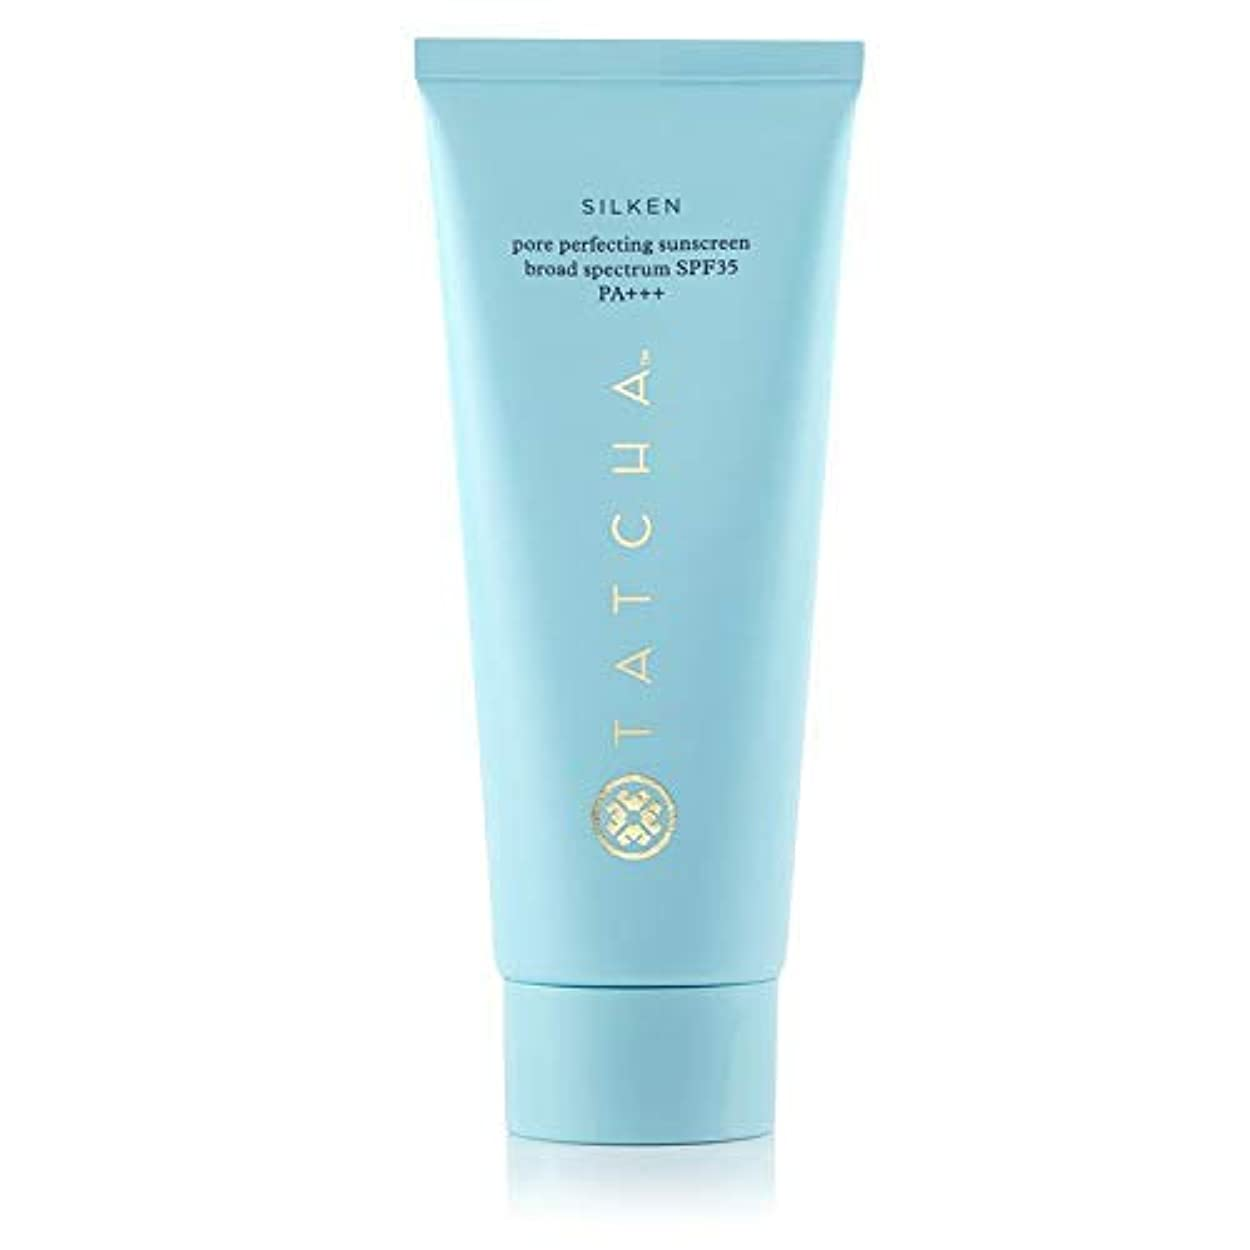 拾う仮定する守るTATCHA SILKEN PORE PERFECTING SUNSCREEN Broad Spectrum SPF35 PA+++ 2 oz/ 59 mLタチャ 日焼け止めクリーム